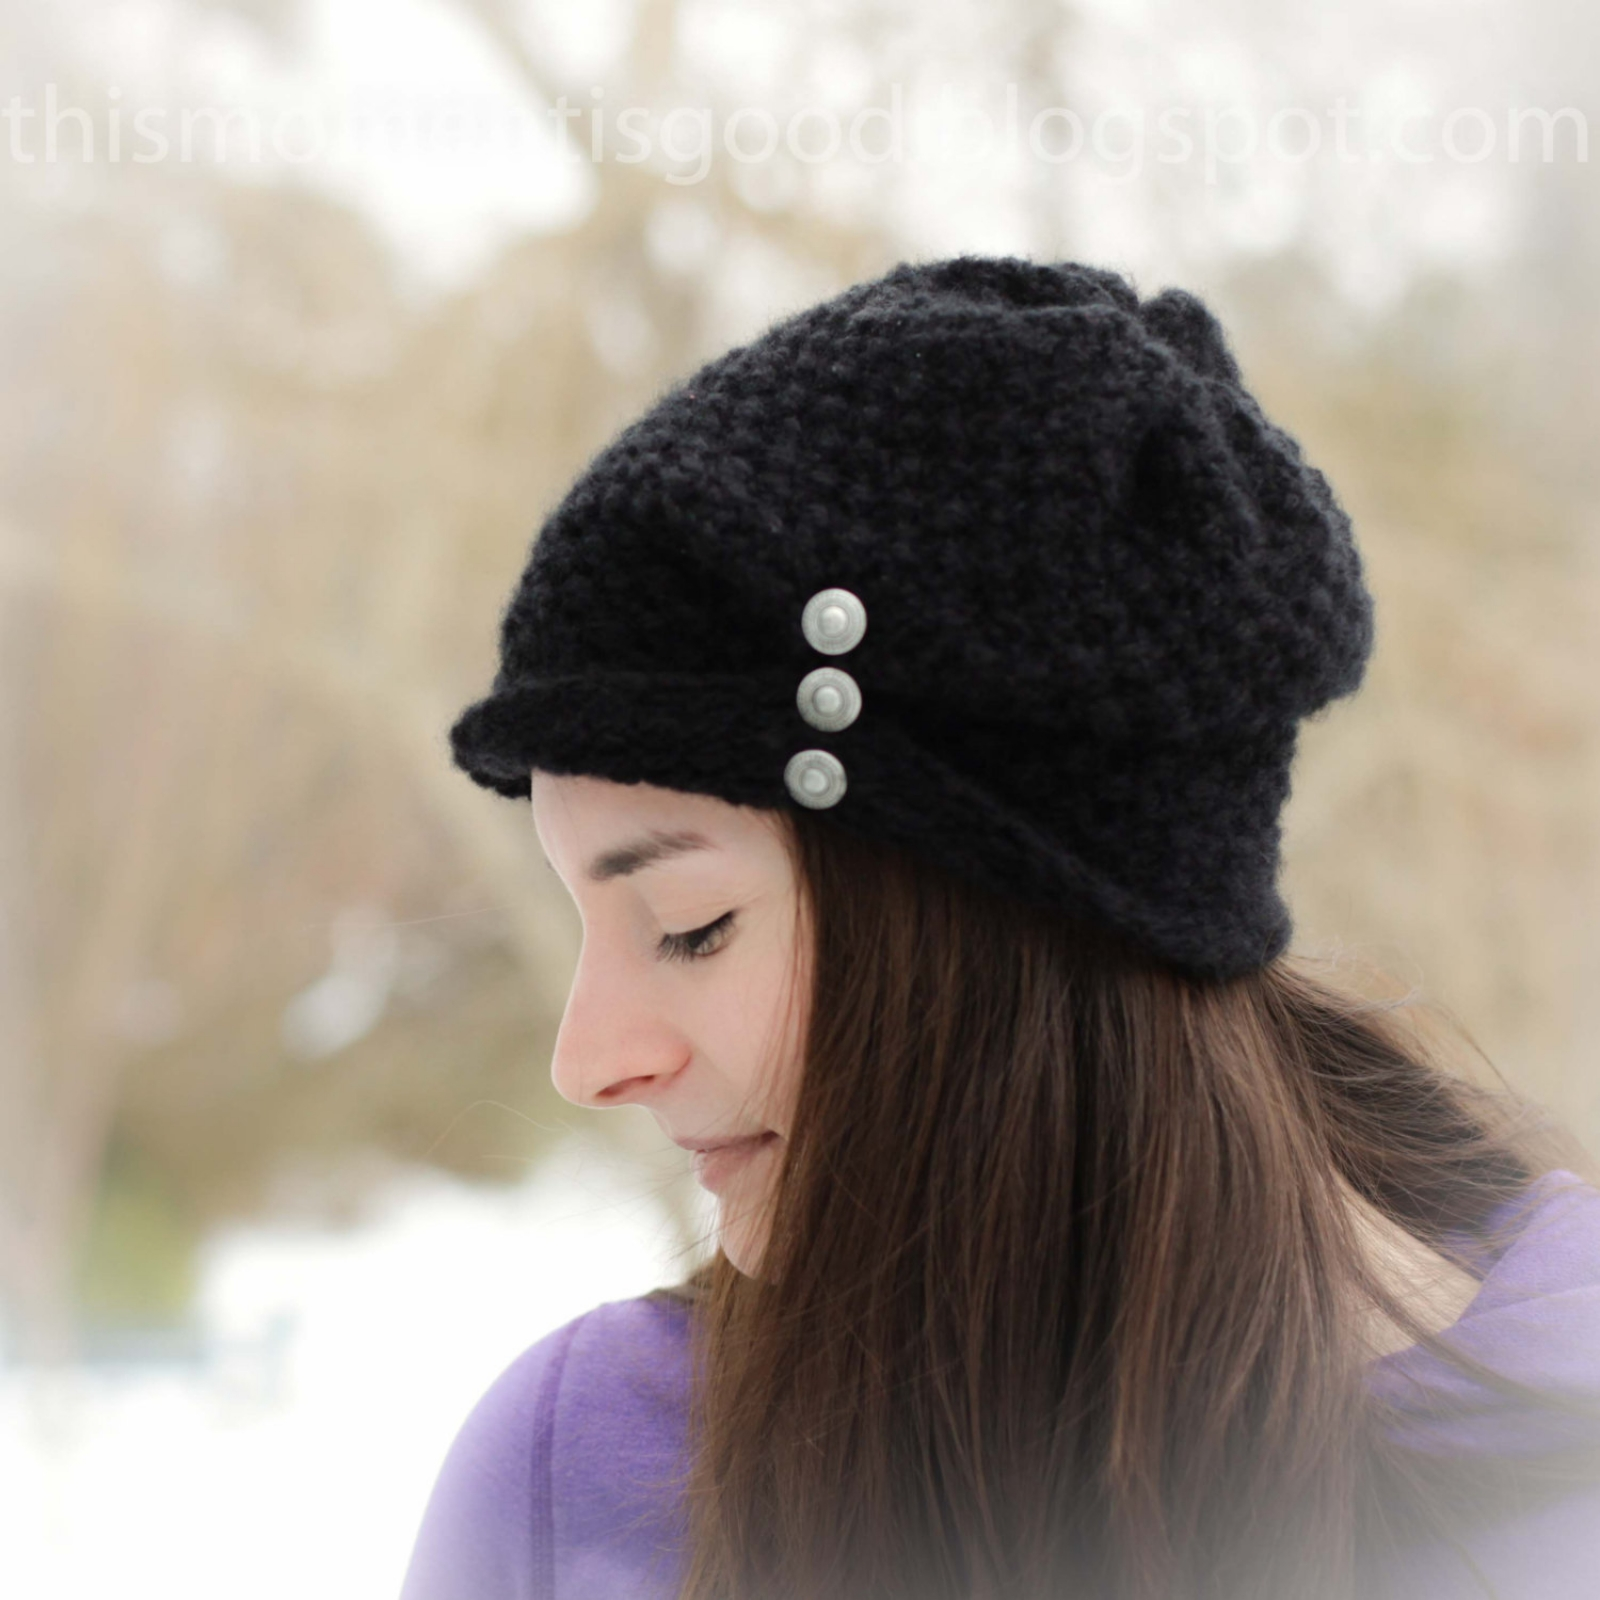 Loom Knit Ladies Folded Brim Hat With Buttons Pattern